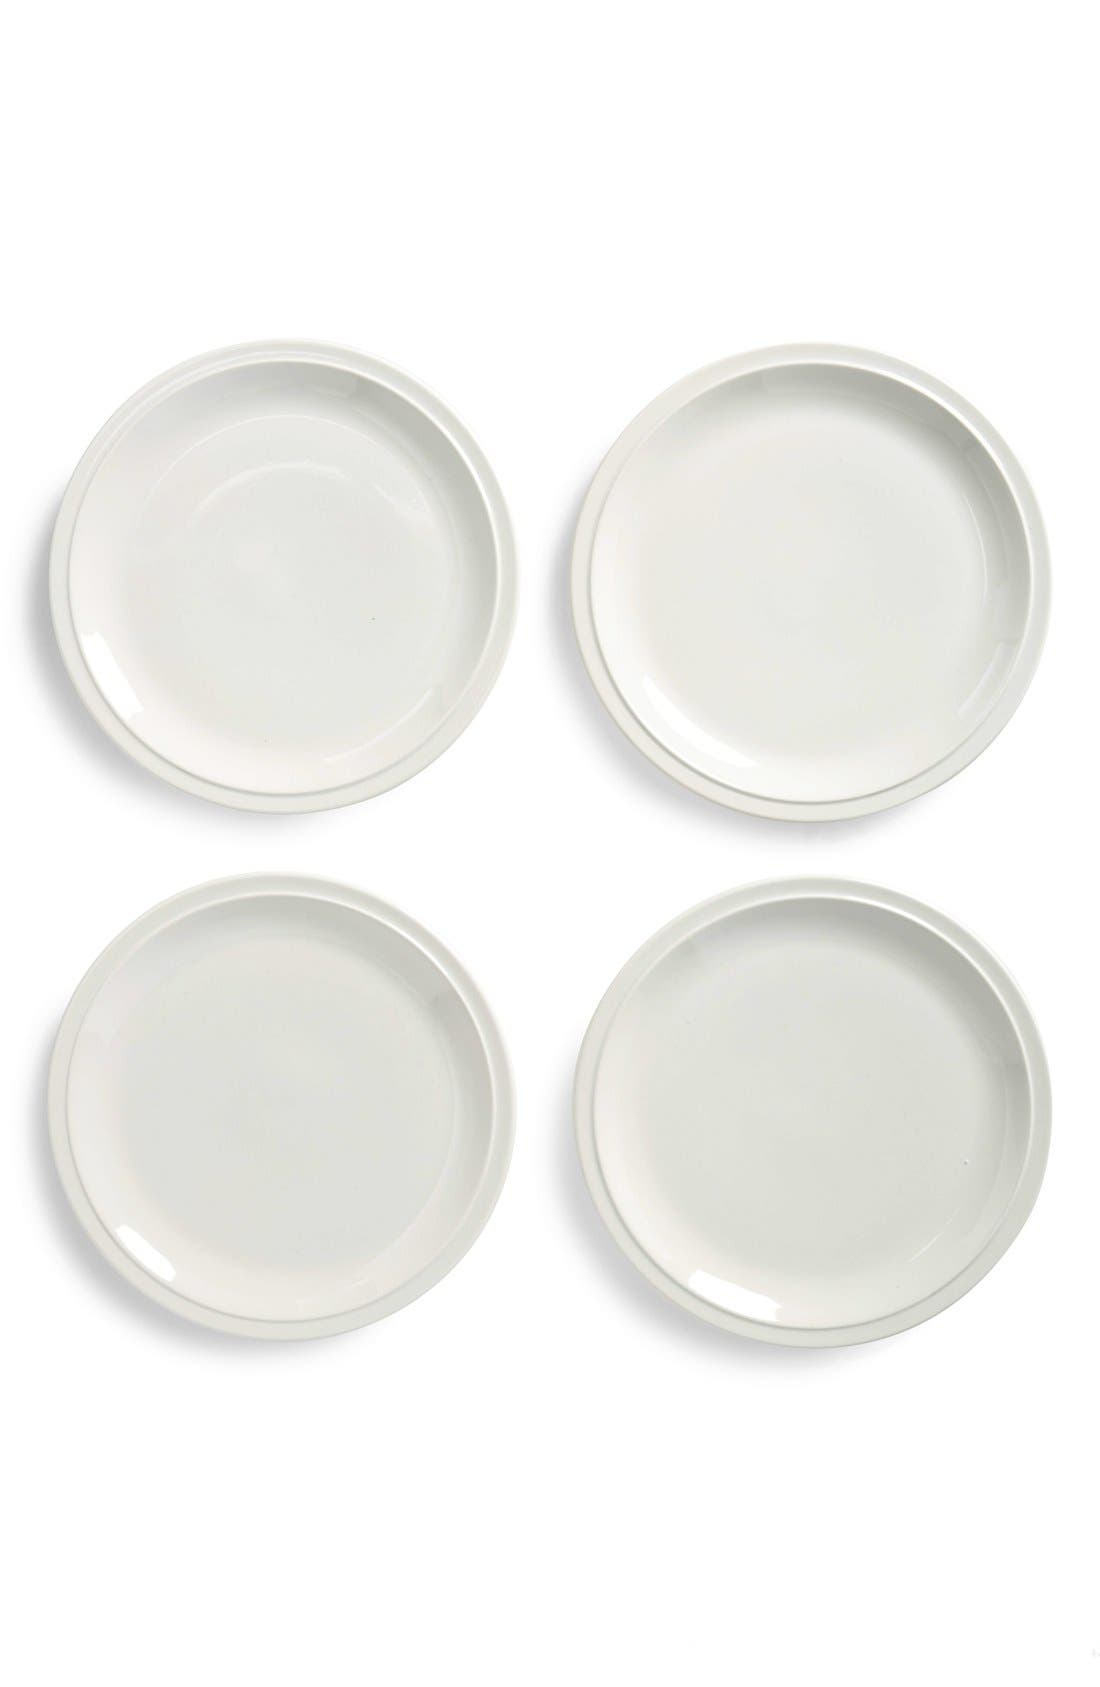 Nordstrom at Home Madrona Set of 4 Dinner Plates ($40 Value)